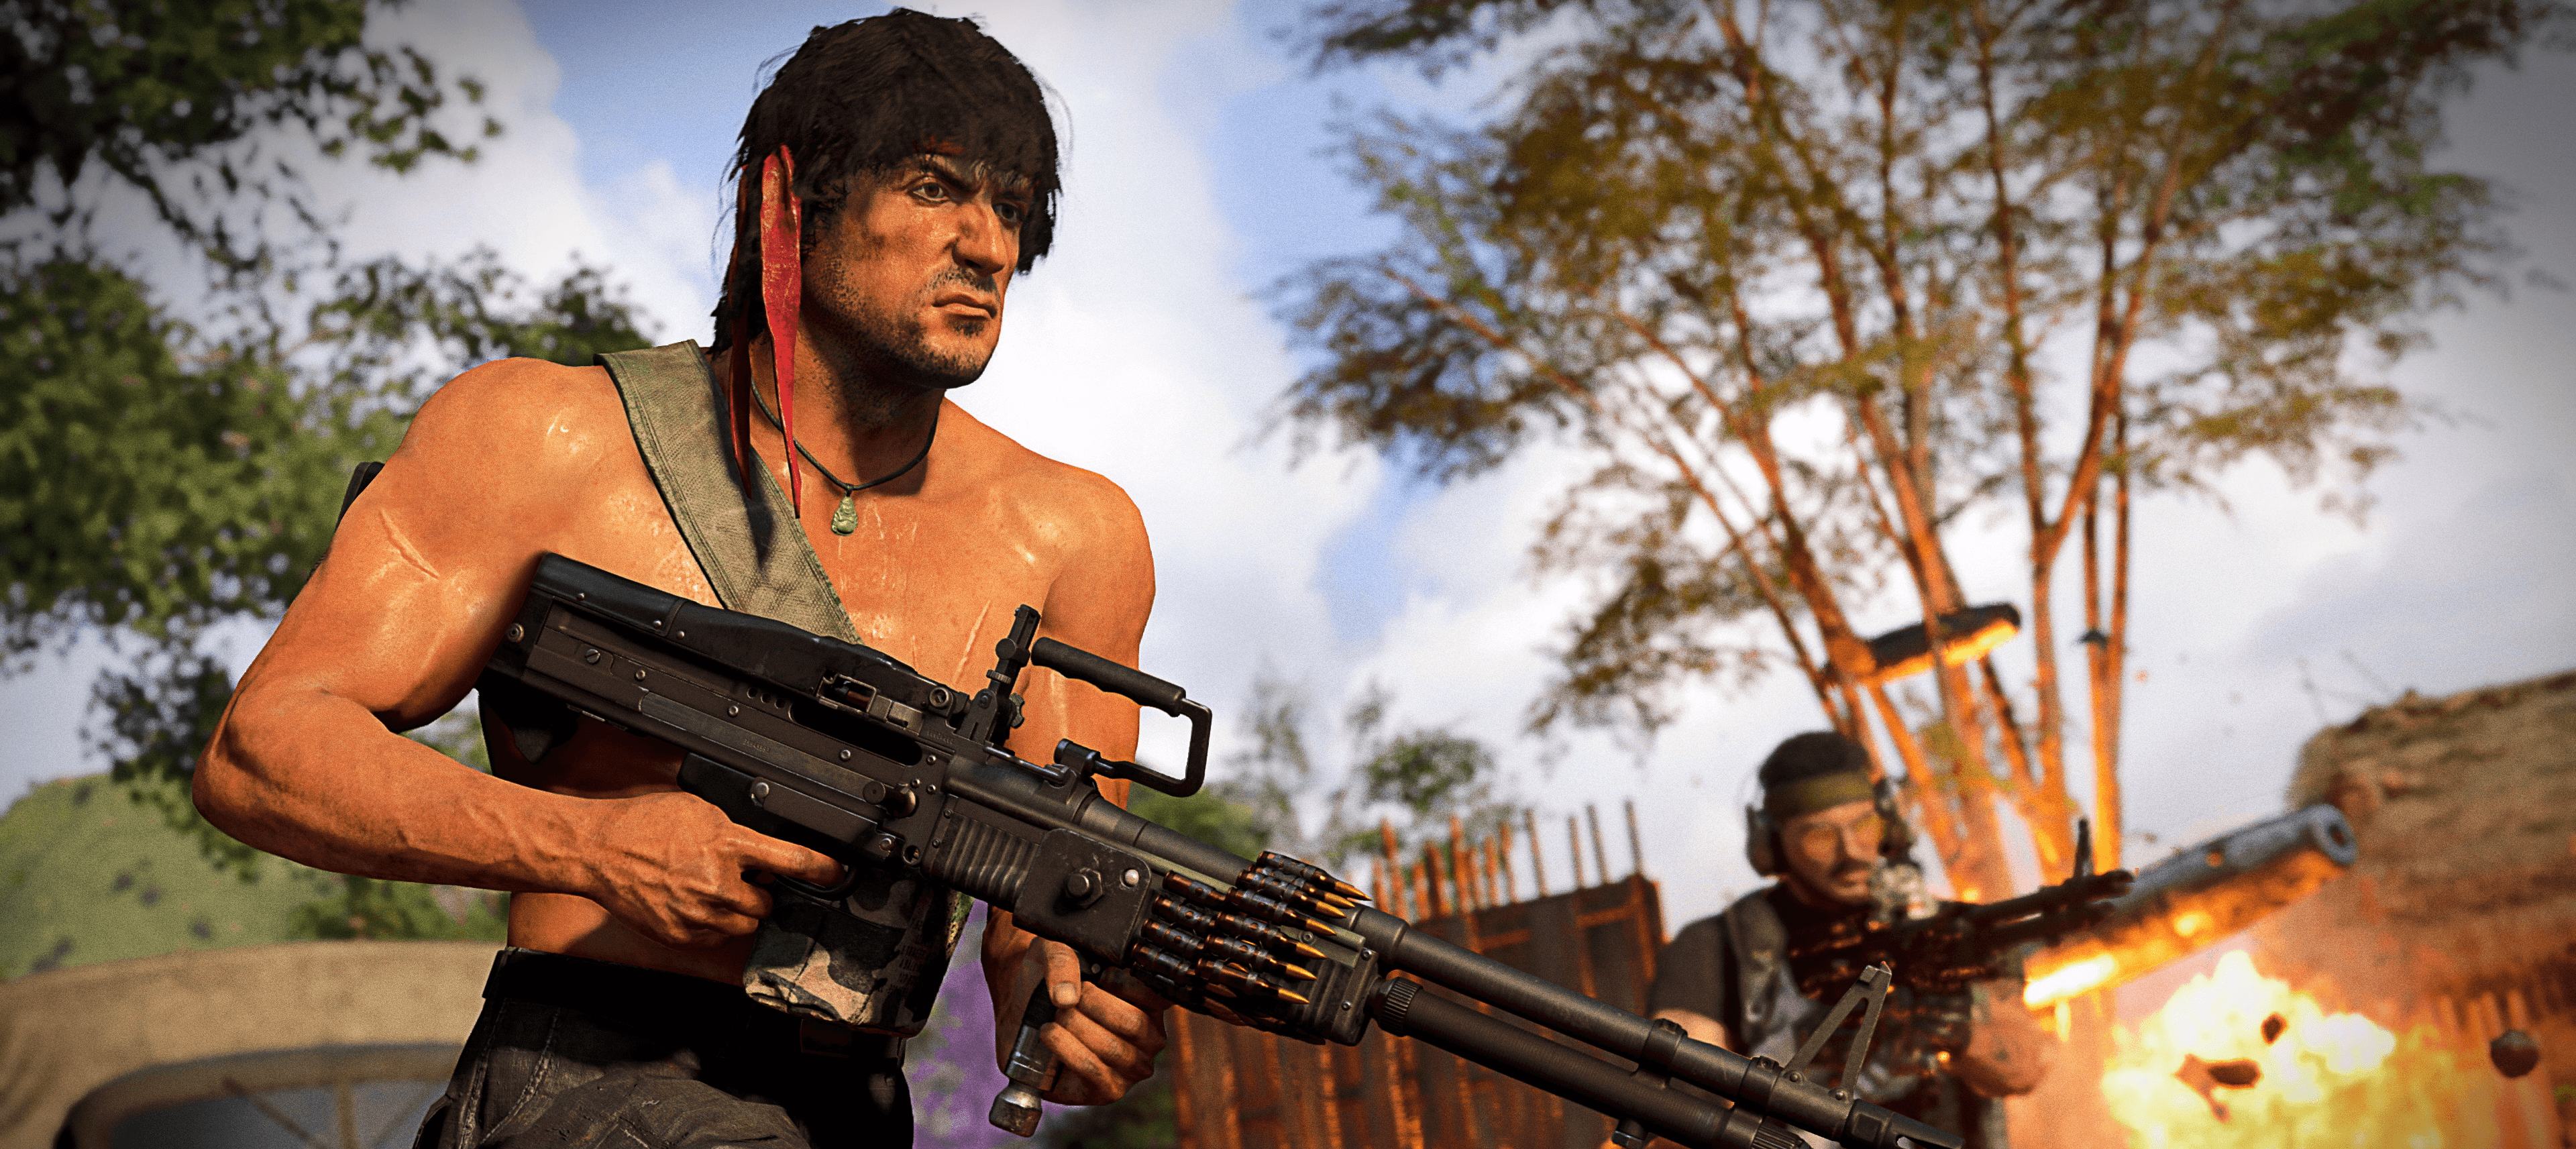 Rambo running forward with an LMG in Call of Duty: Warzone